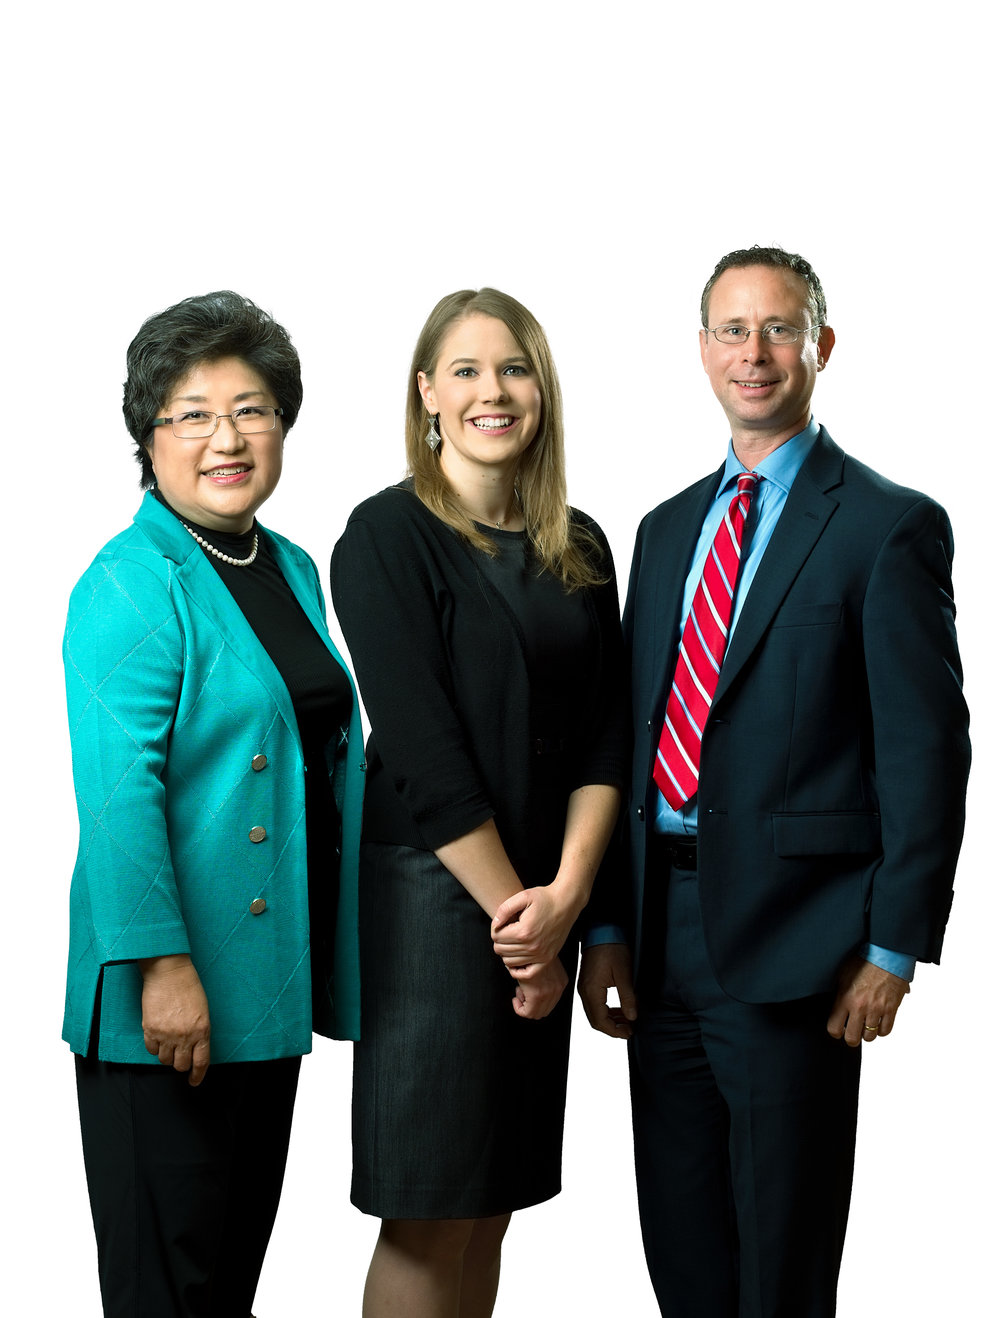 State Rep Cindy Ryu, State Rep Candidate Lauren Davis, & Jesse Salomon (permission to reproduce is granted)